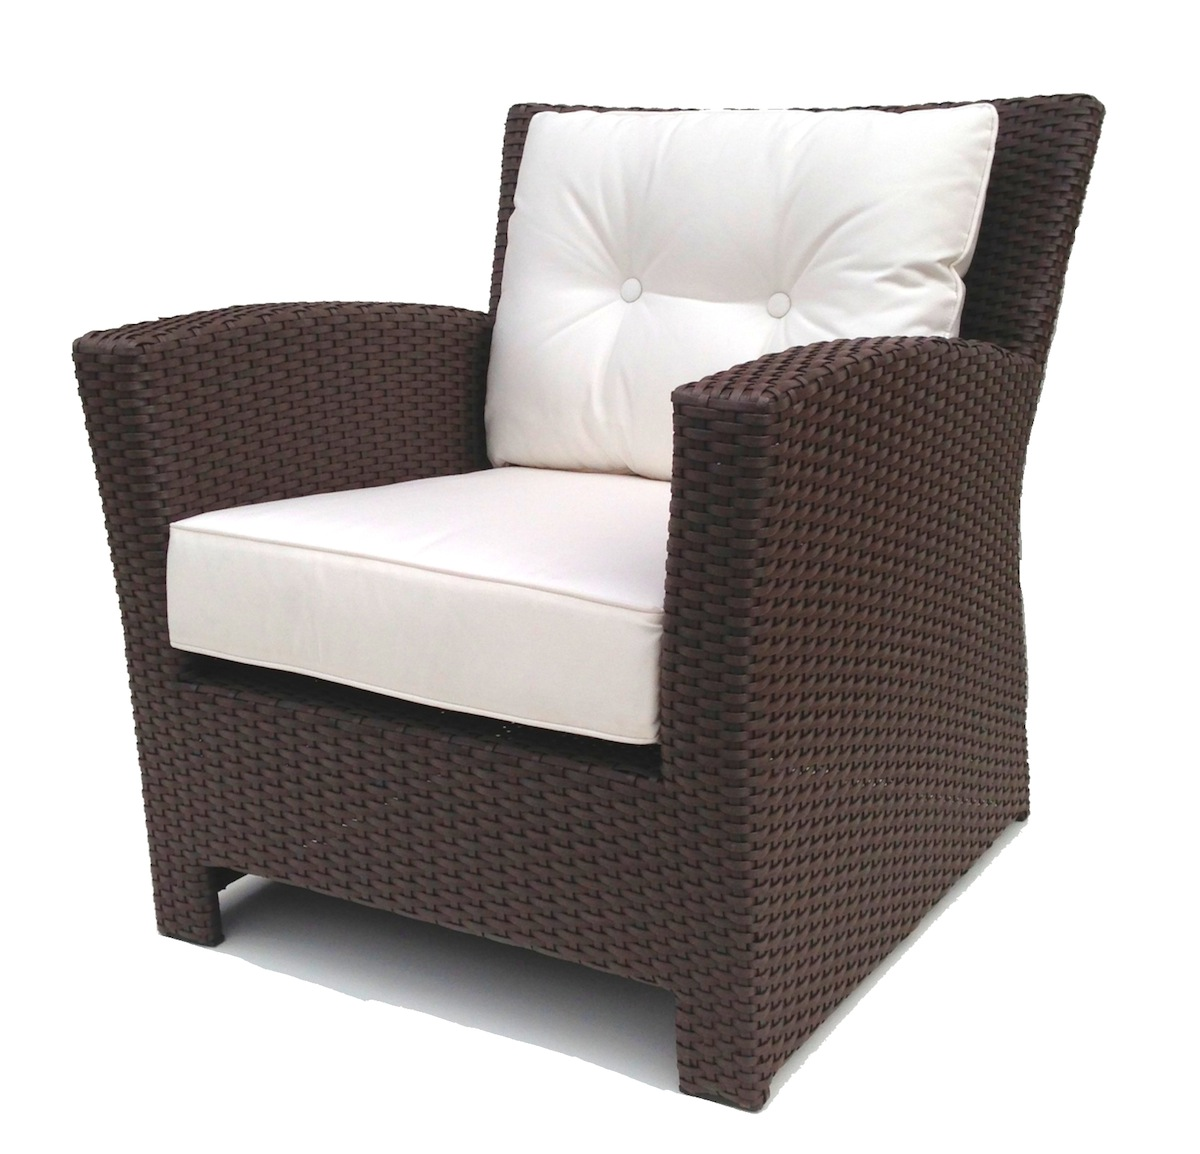 Outdoor wicker club chair for Outdoor wicker furniture